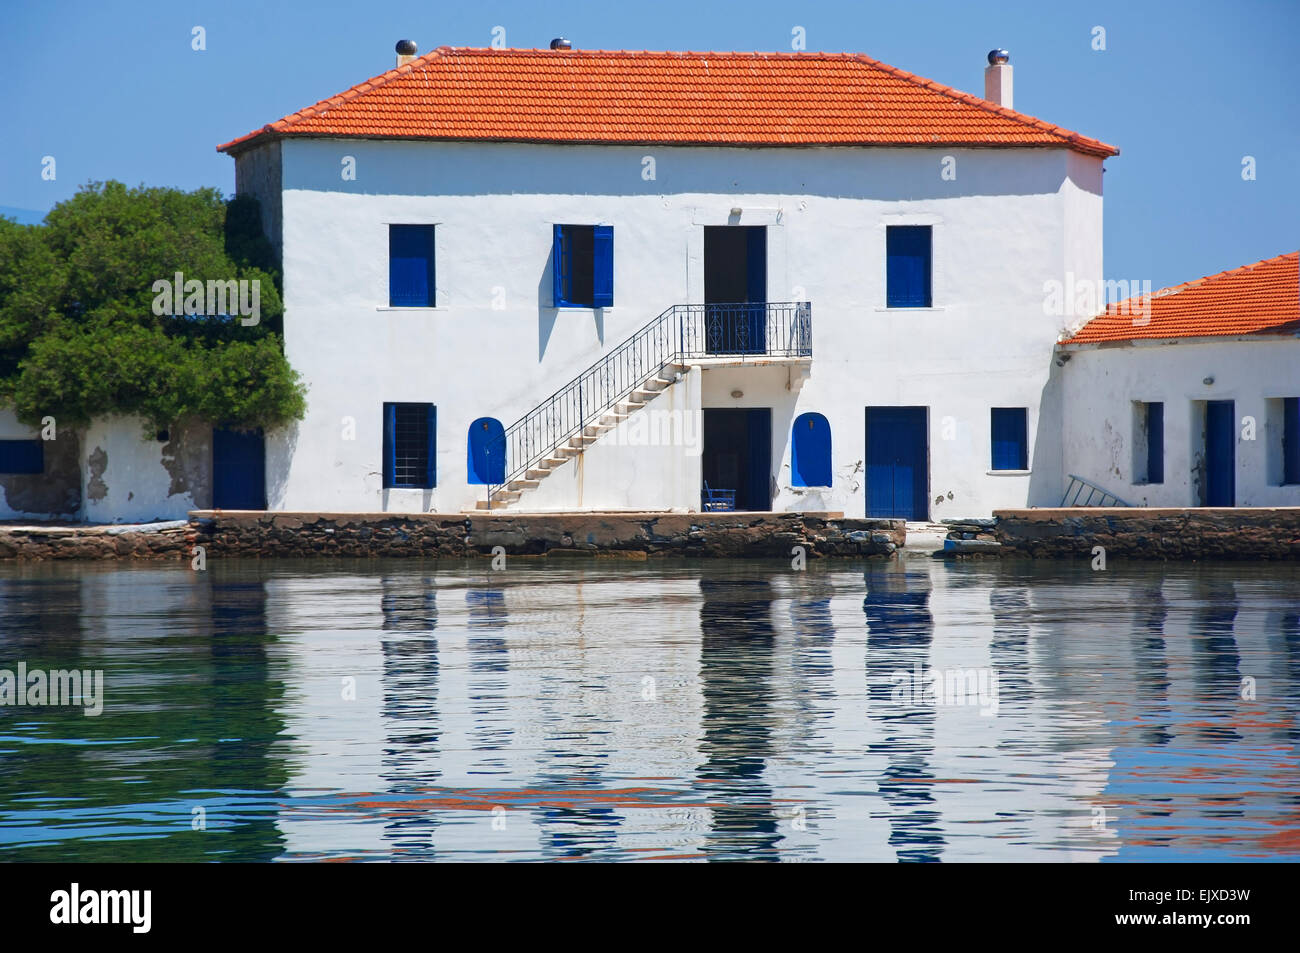 Residential house at the Pagasitic Gulf, Pelion Peninsula, Thessaly, Greece - Stock Image